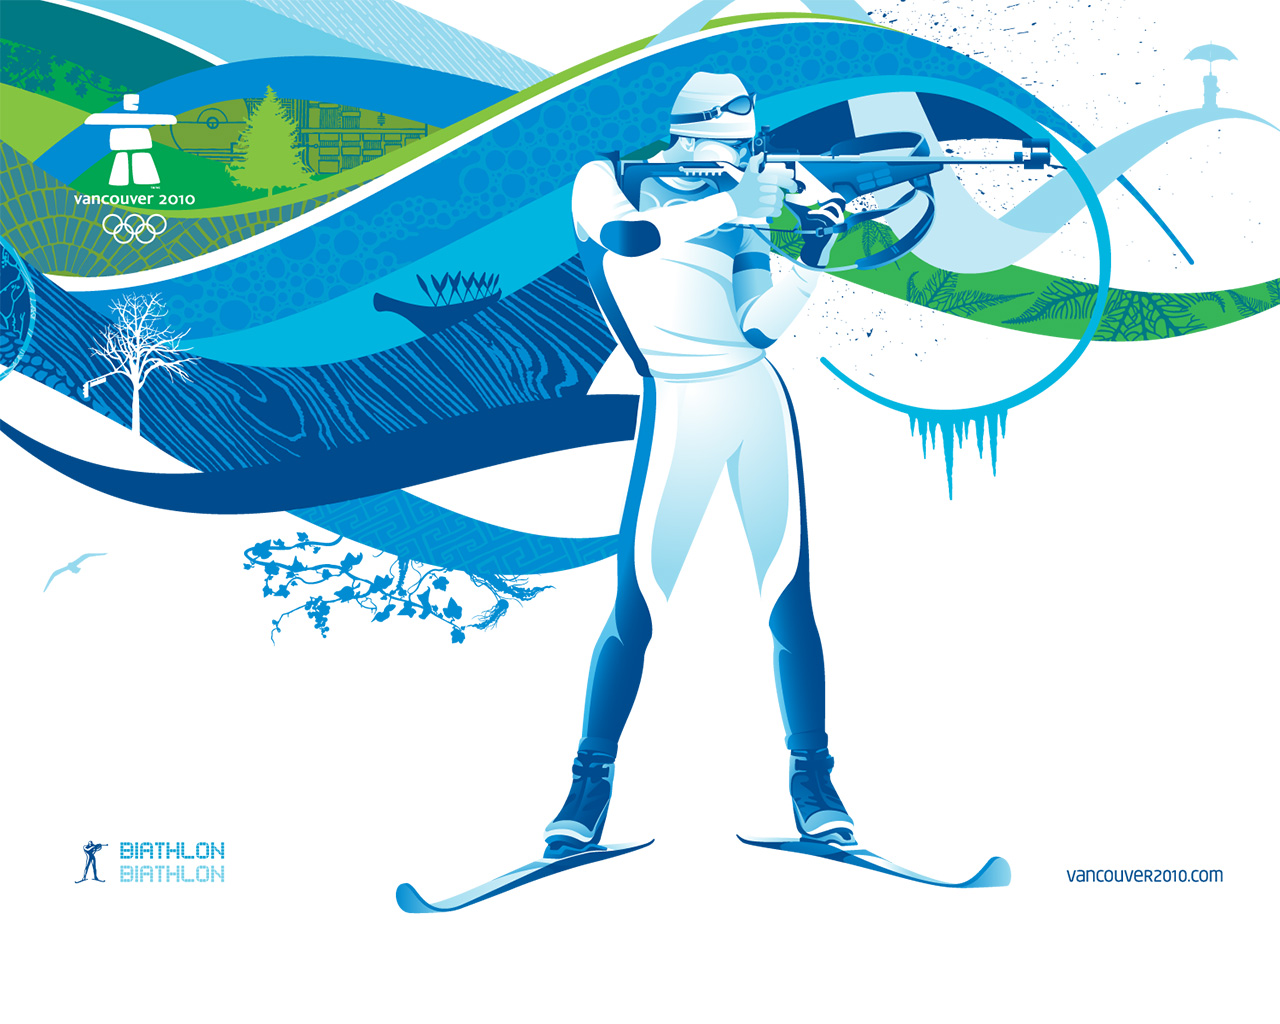 Powerpoint templates free olympics images powerpoint template and olympic games powerpoint templates free chevrolet 2008 7 pin trailer olympic games powerpoint templates free toneelgroepblik toneelgroepblik Choice Image